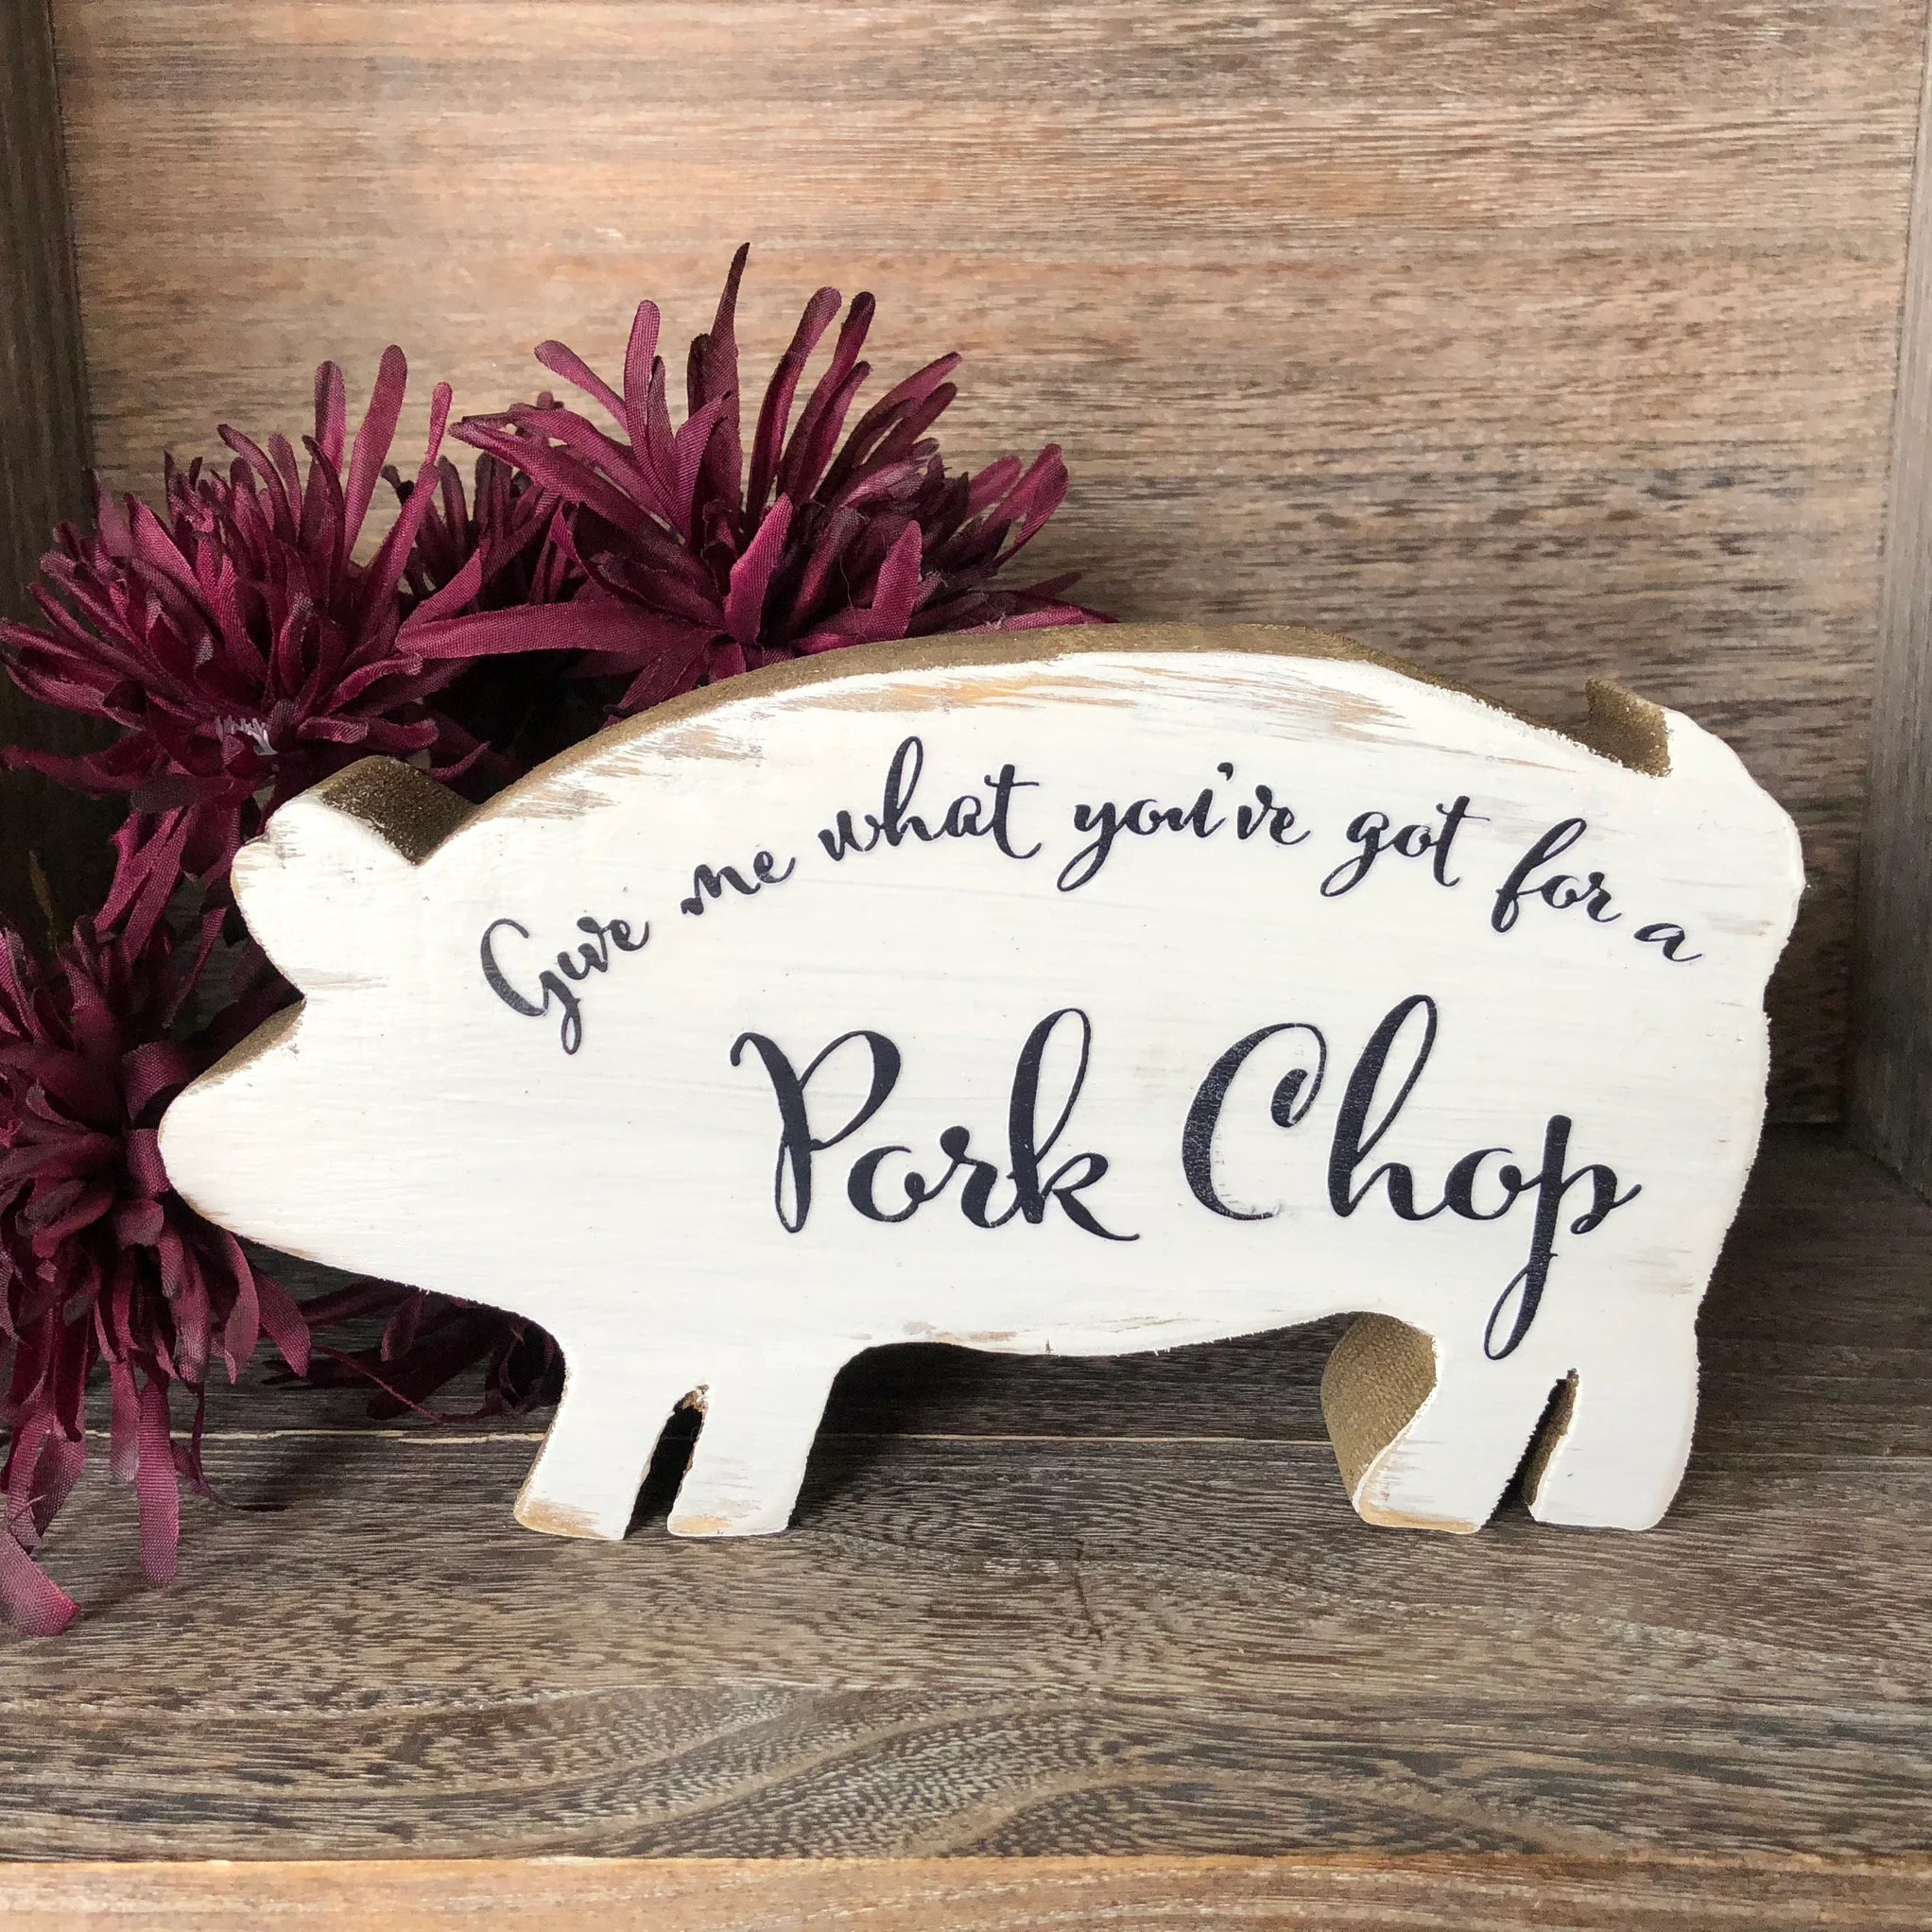 pig kitchen armstrong cabinets pork chop sign thick wooden stand alone decor farmhouse funny signs humor